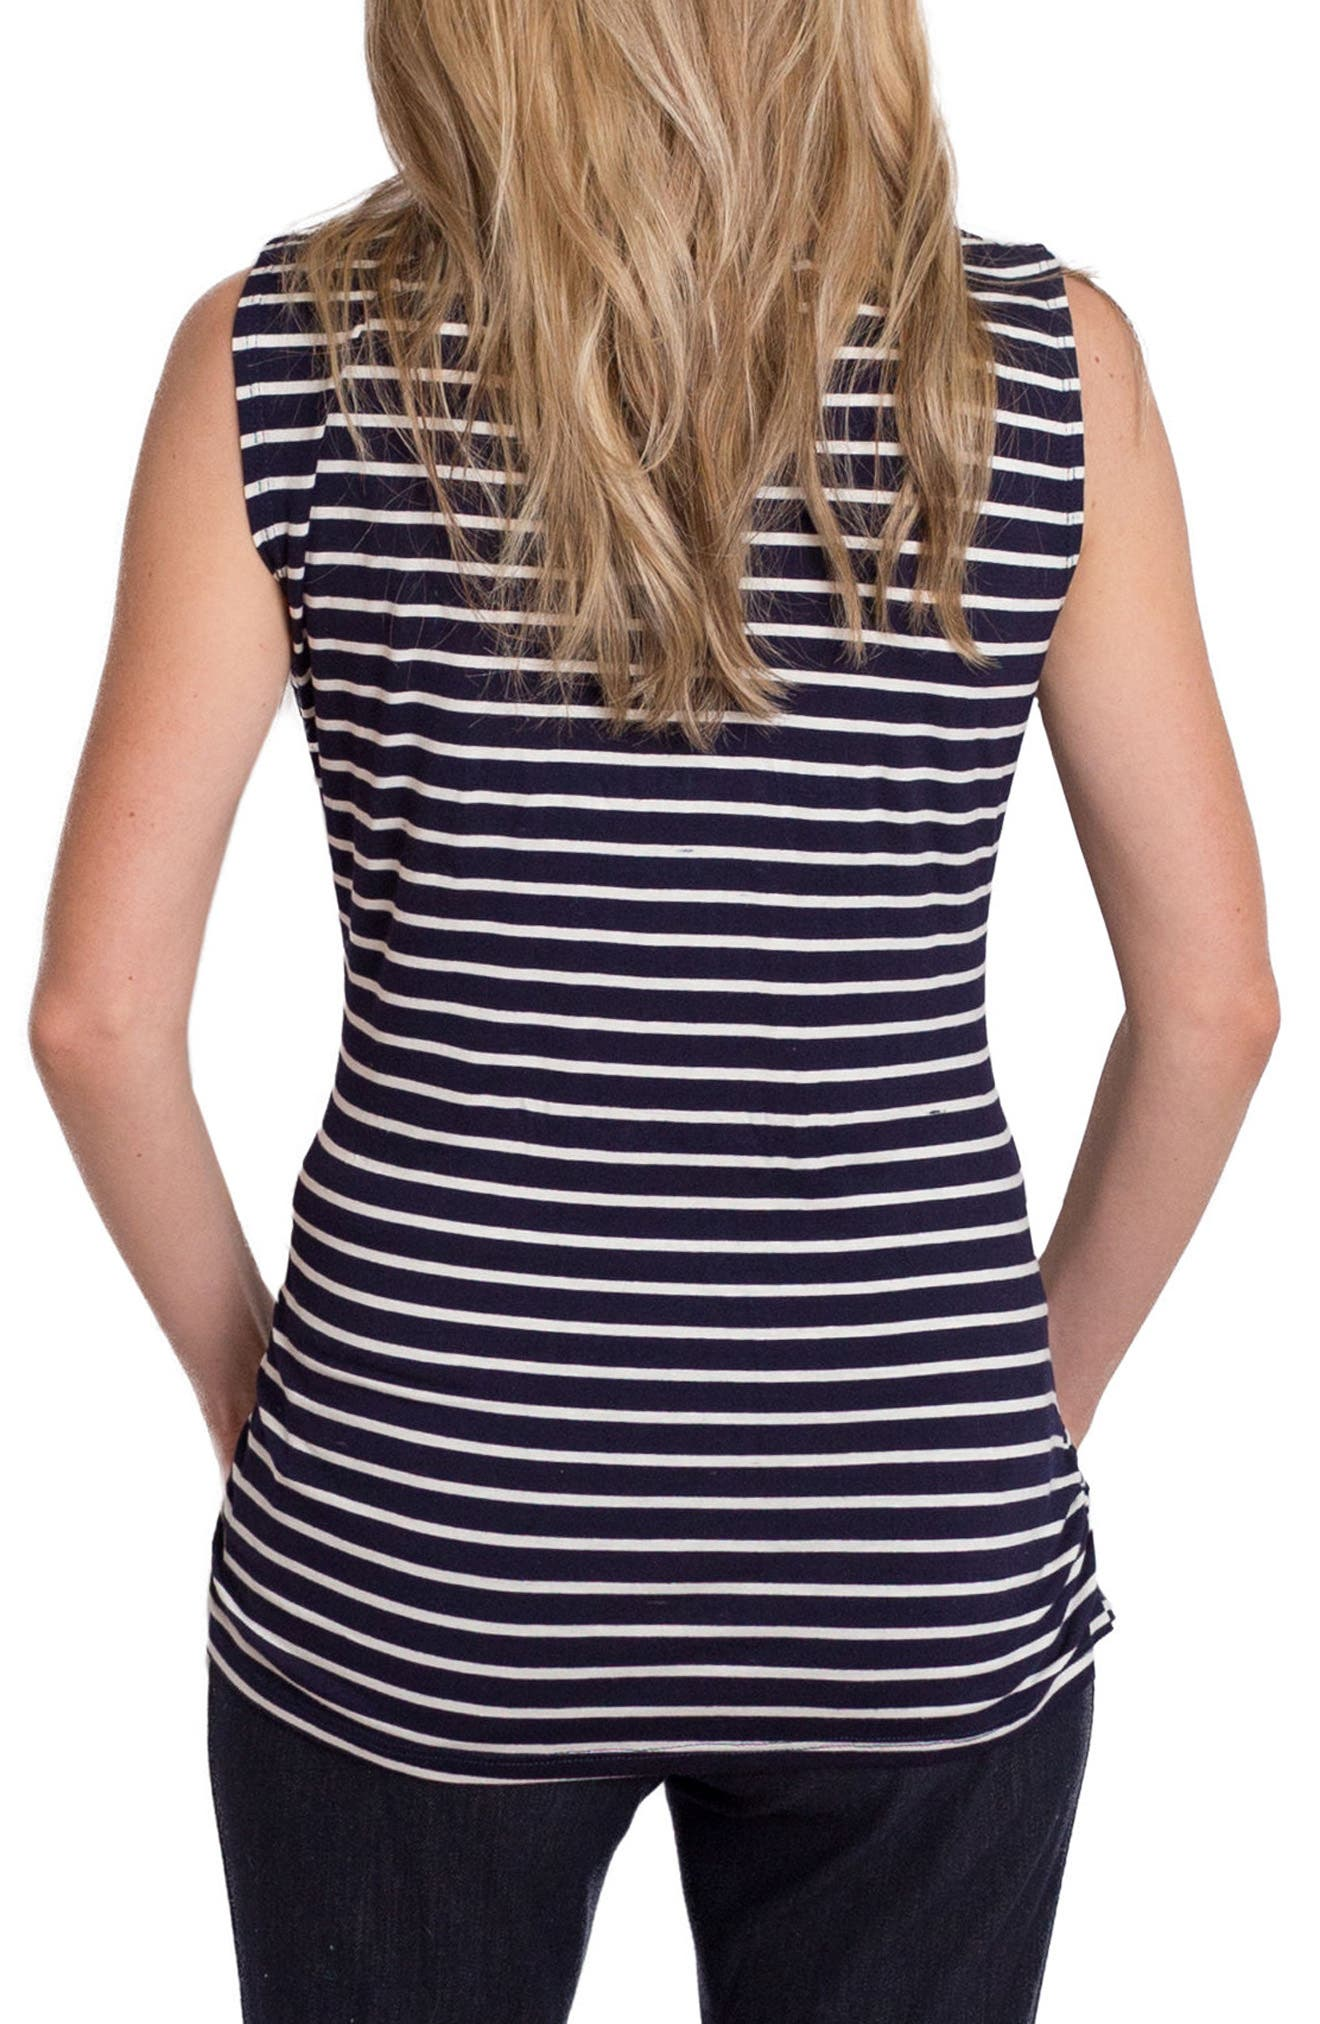 Trendy Nursing Tank,                             Alternate thumbnail 3, color,                             NAVY/ WHITE STRIPE